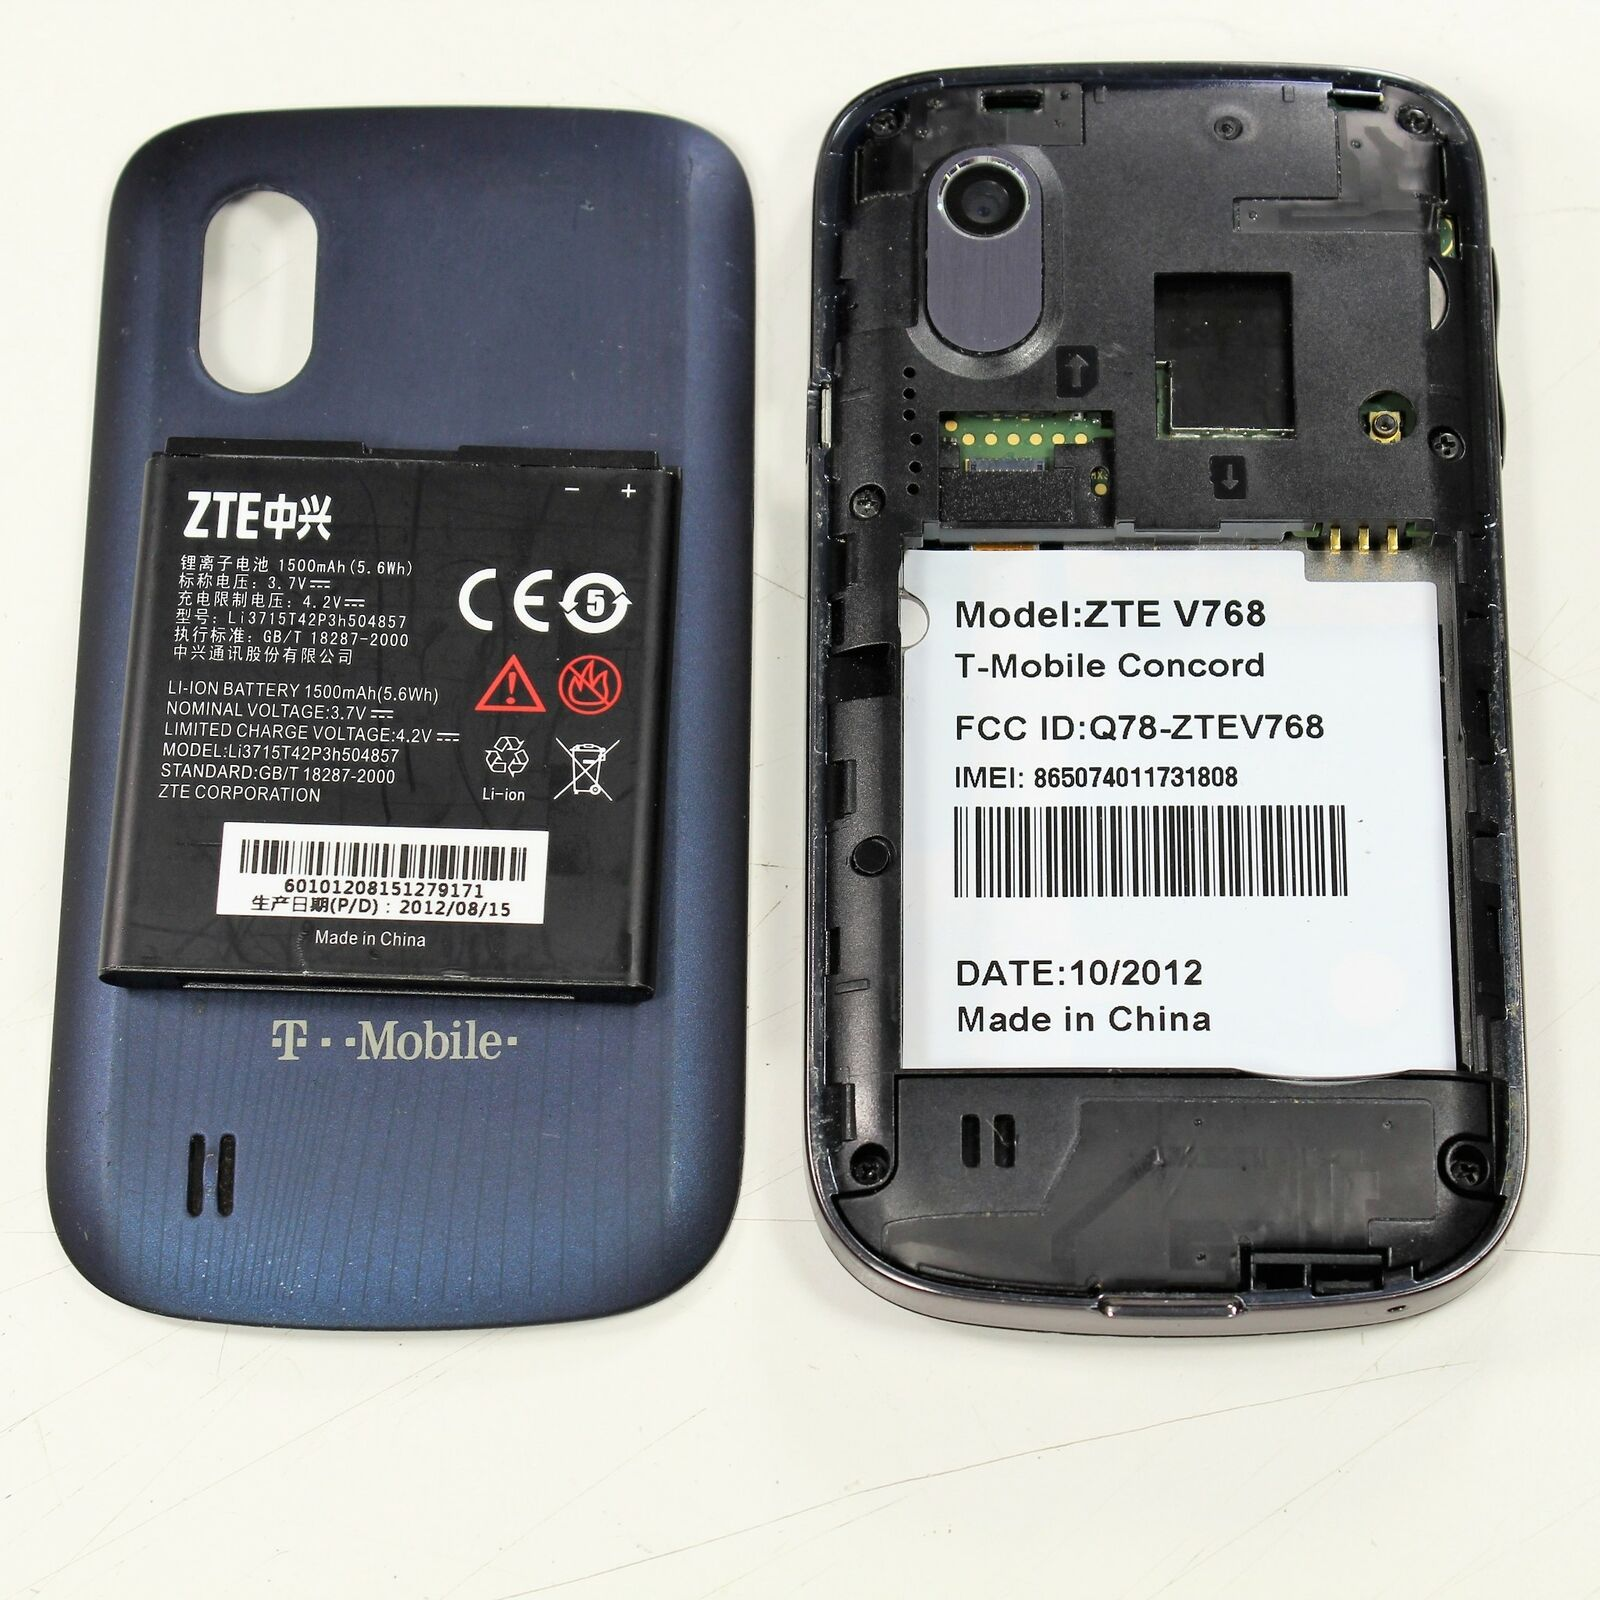 ZTE Concord (T-Mobile) 4G Smartphone V768 Blue - ⭐️ Fast Shipping ⭐️